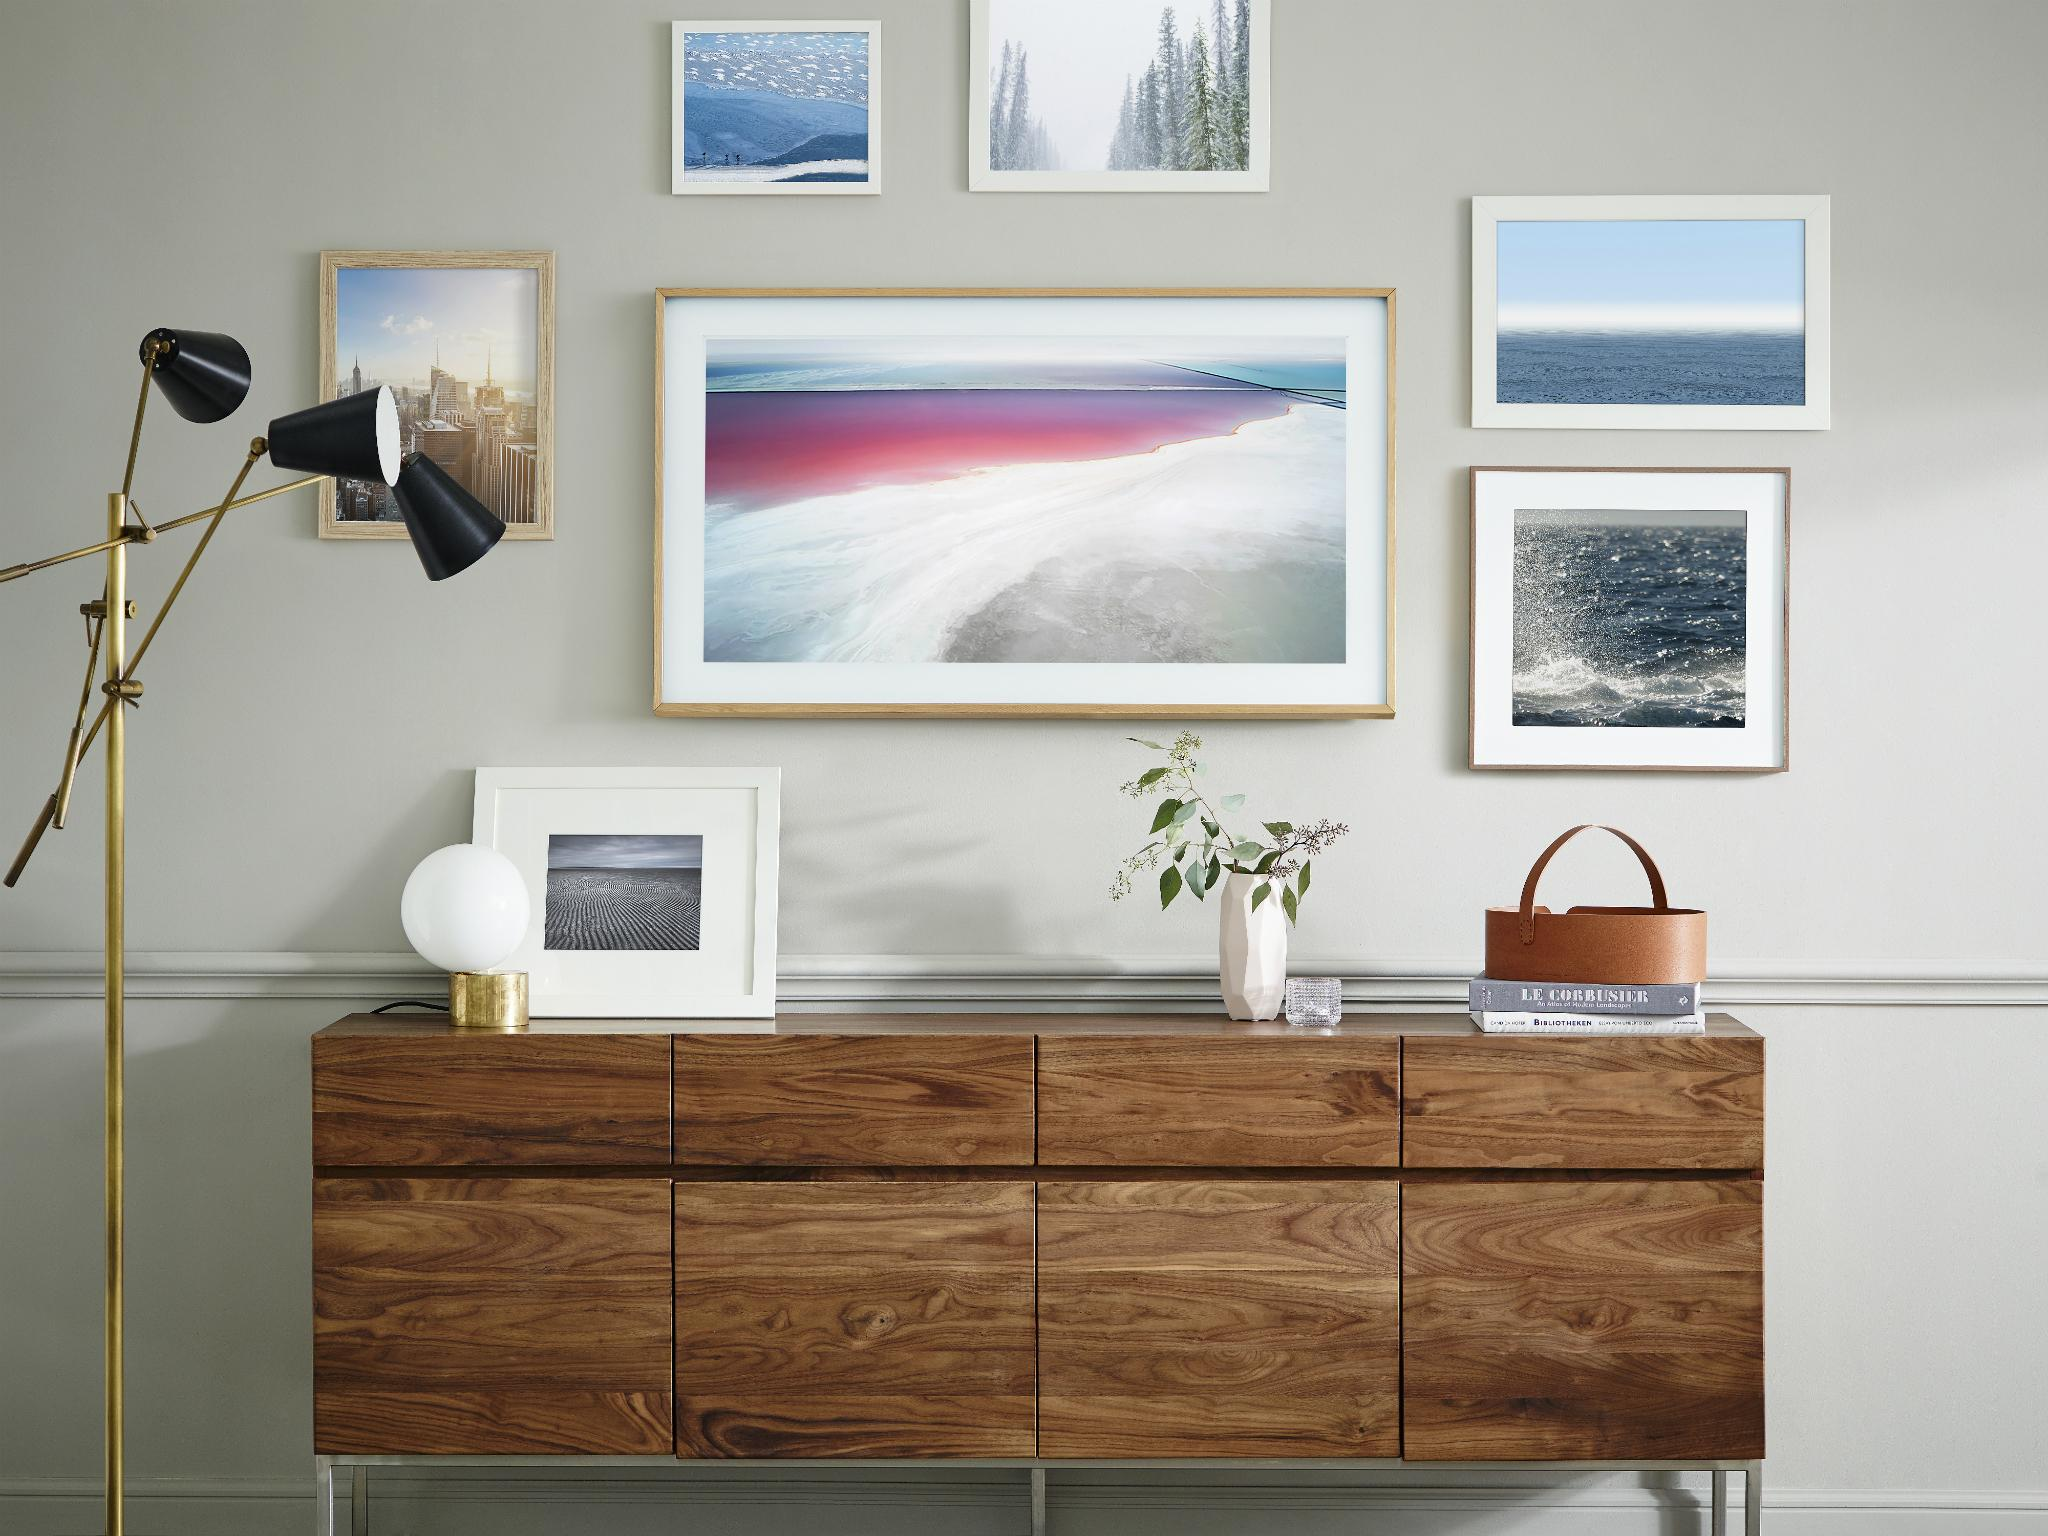 The Frame: Samsung\'s new 4K TV transforms into wall art | The ...